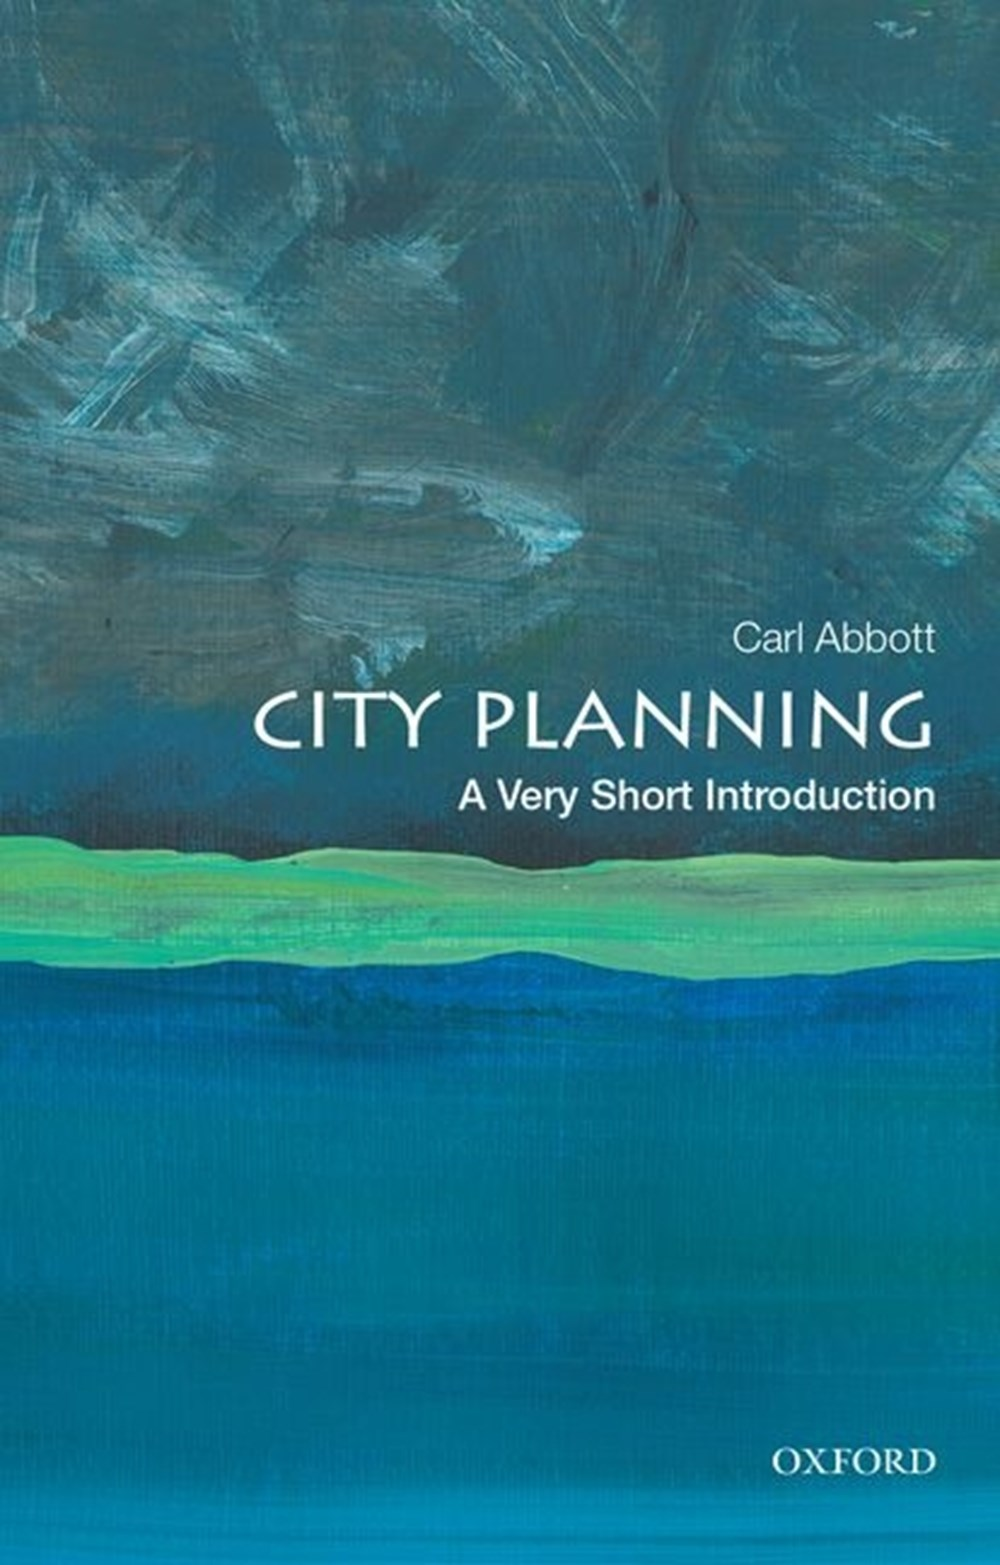 City Planning A Very Short Introduction